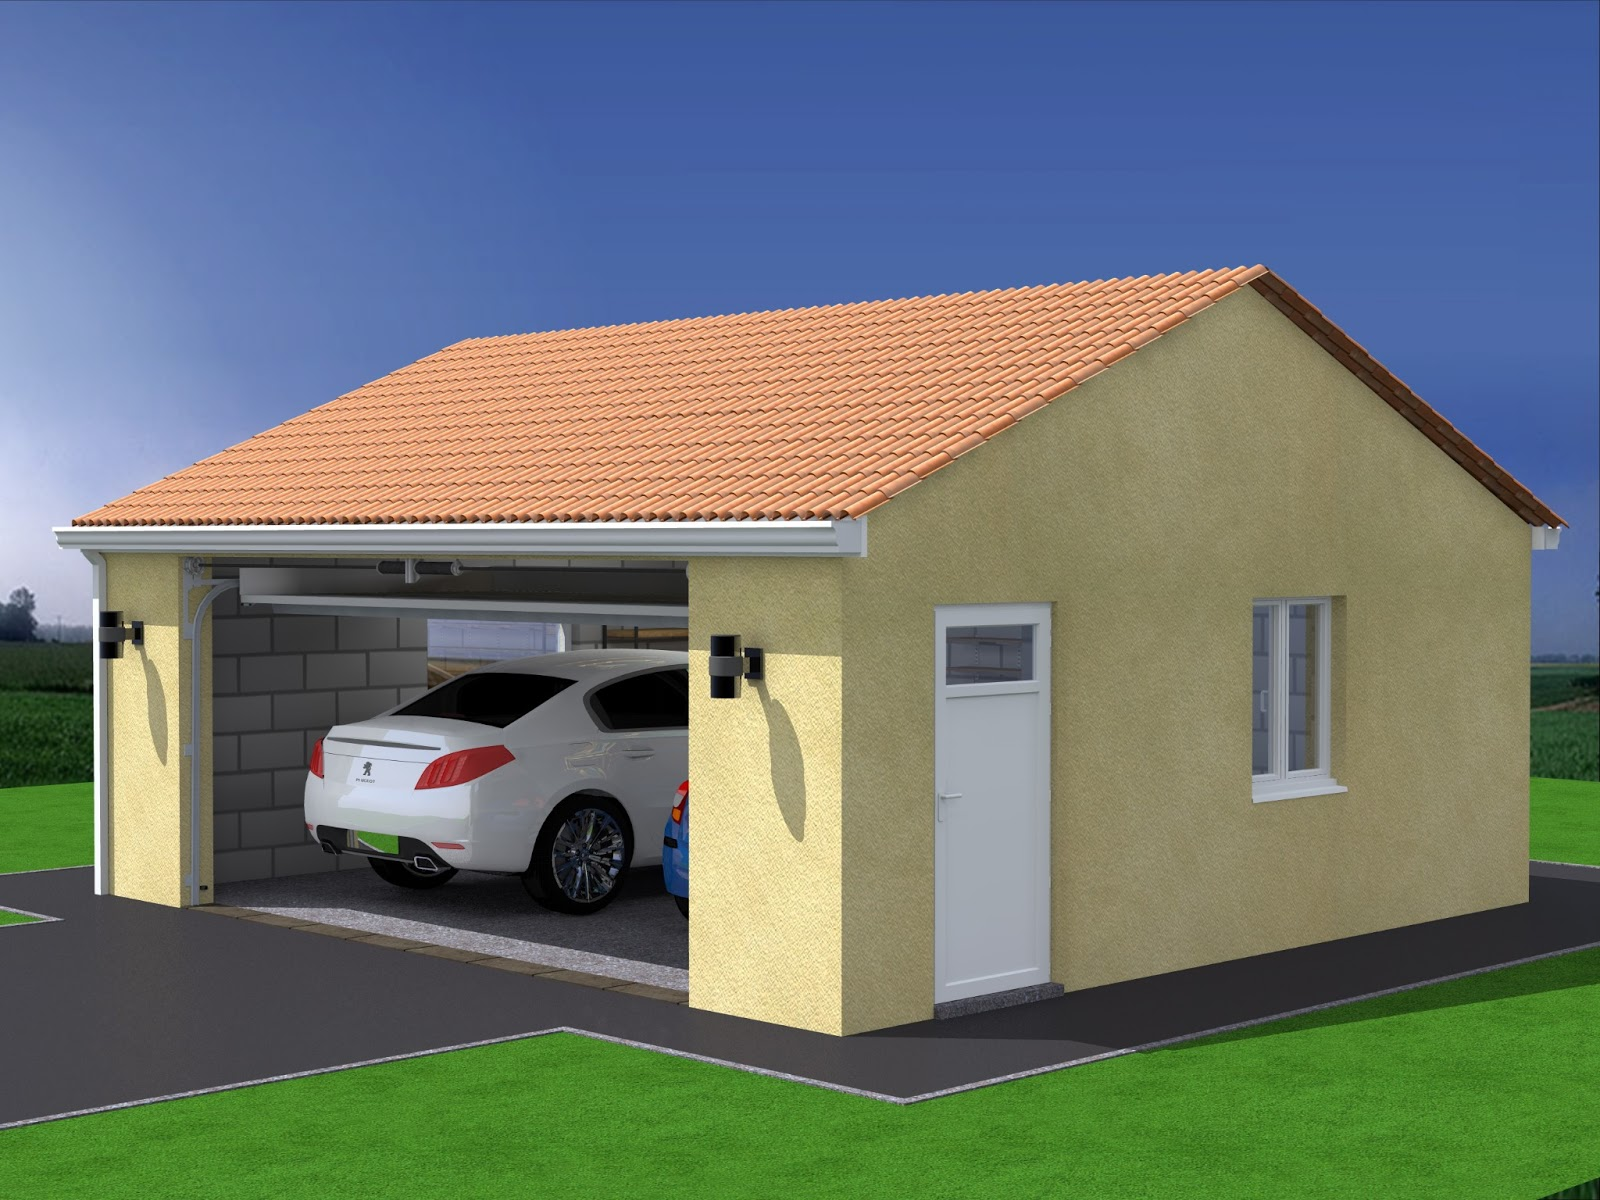 Cout de construction d un garage co t de construction d for Tarif construction garage